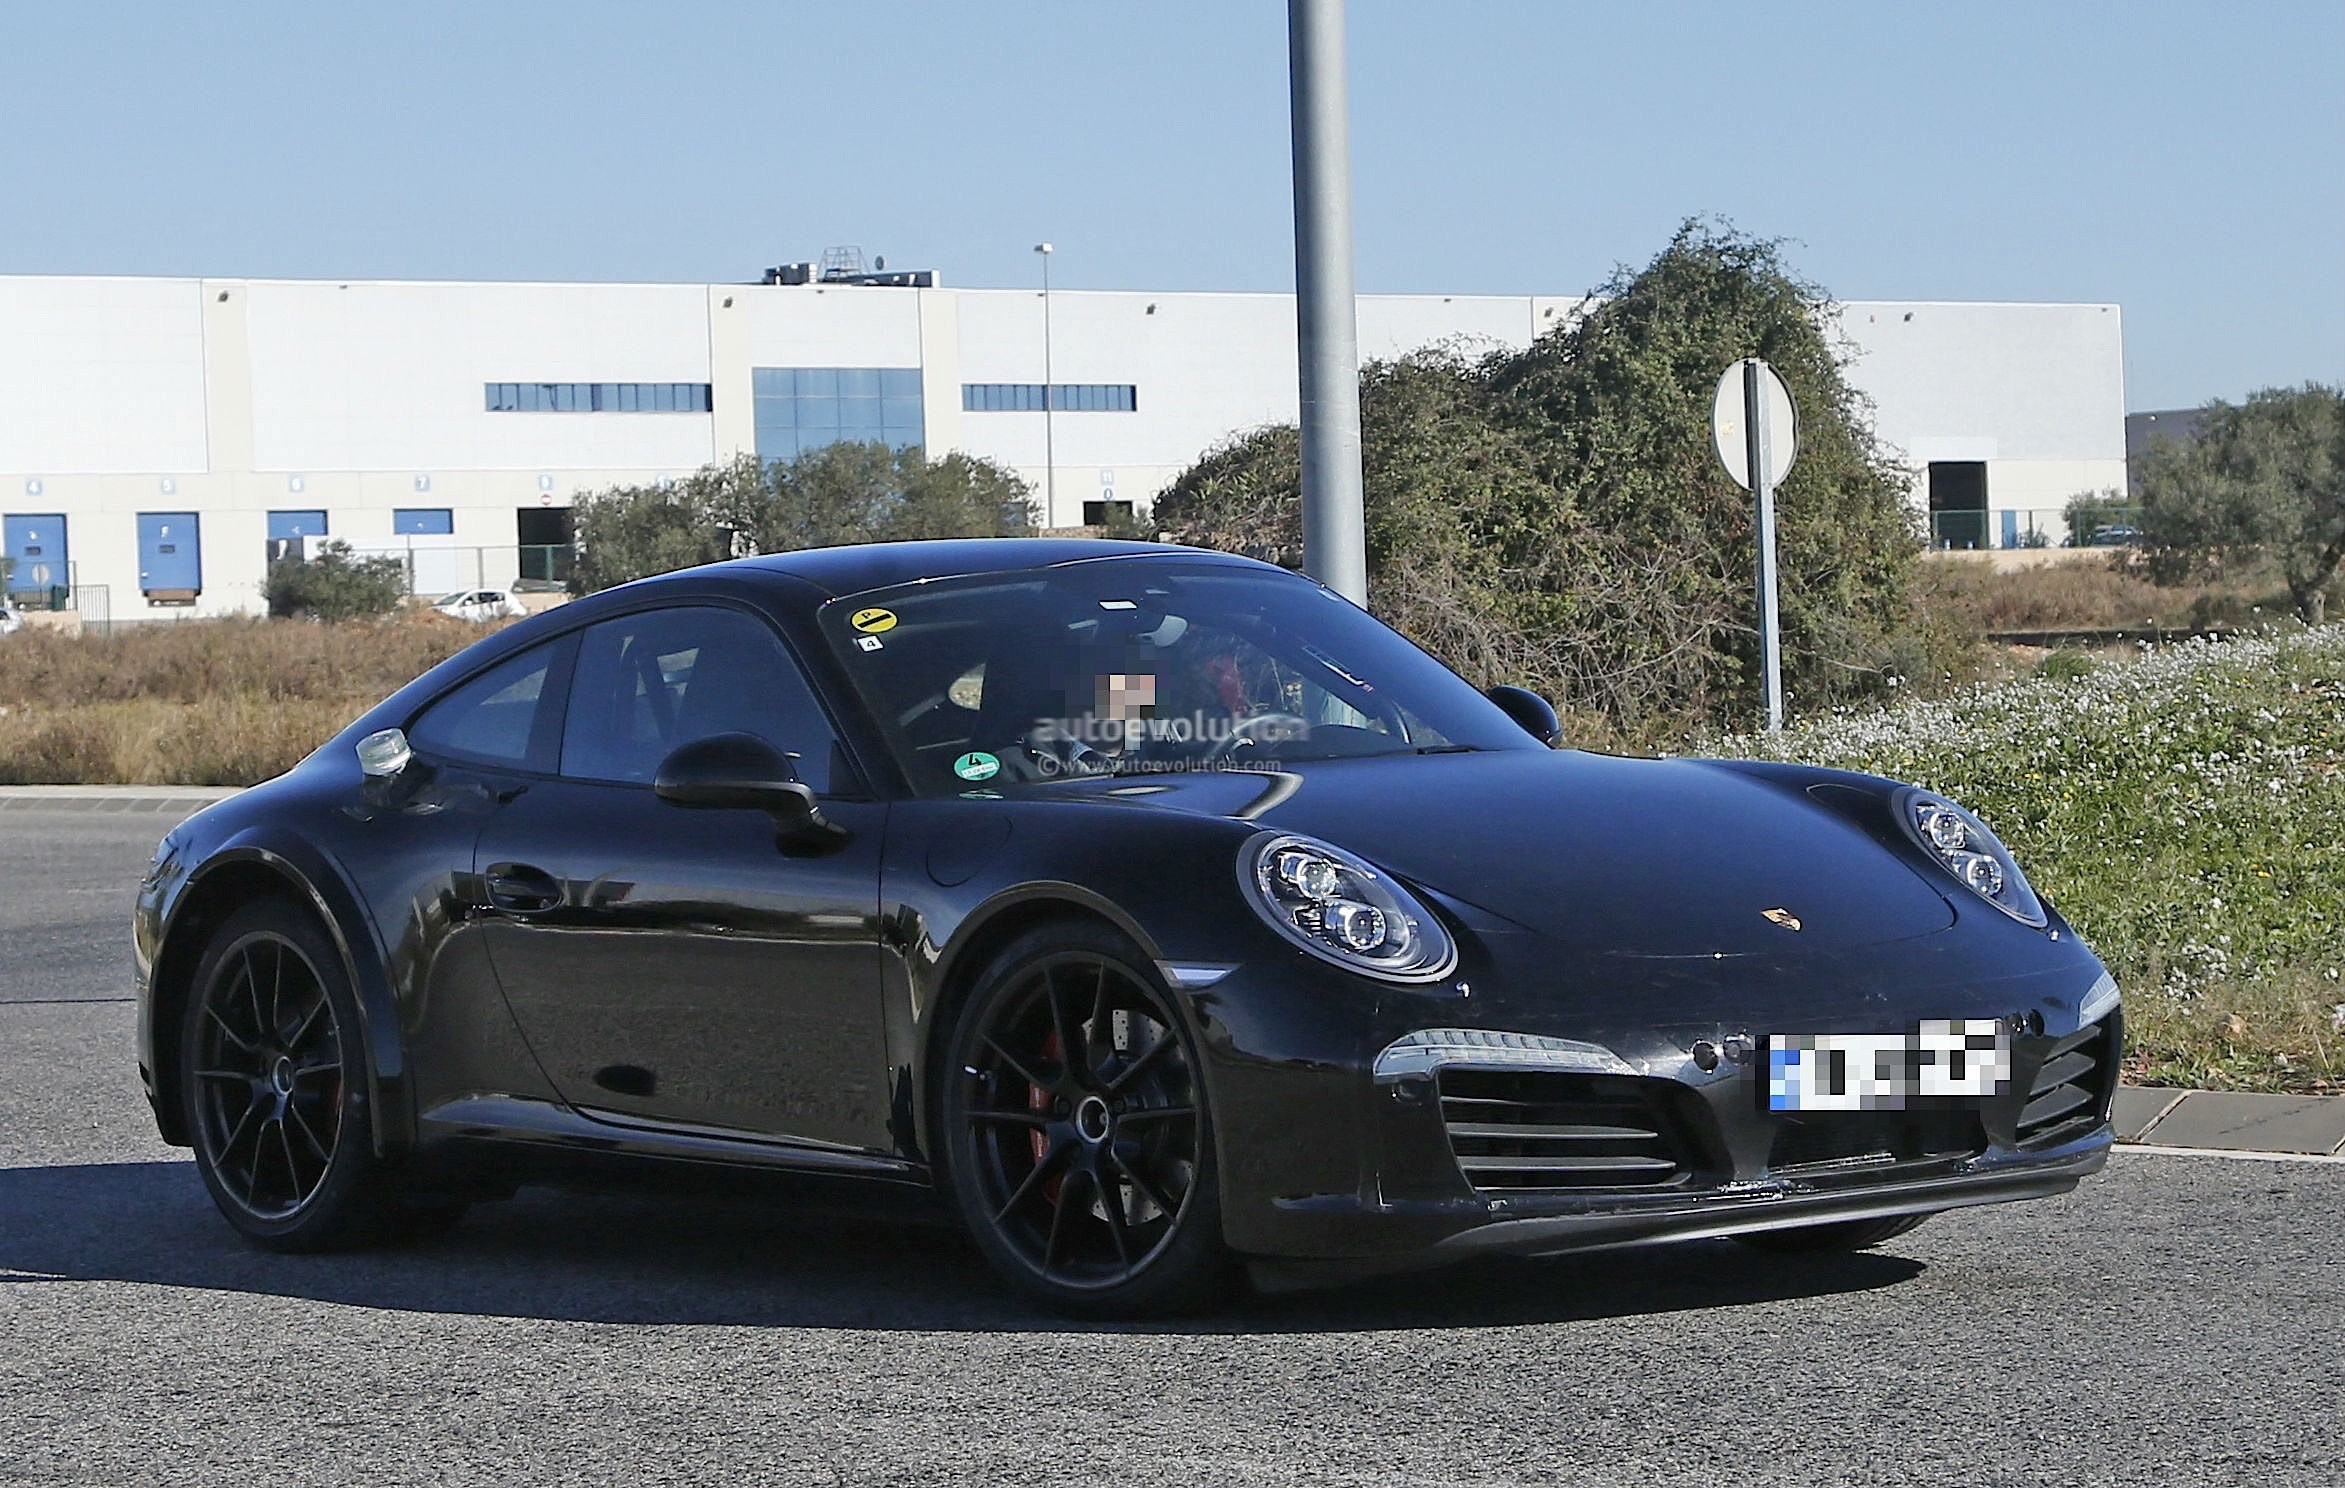 2019 Porsche 911 Turbo S photo - 3